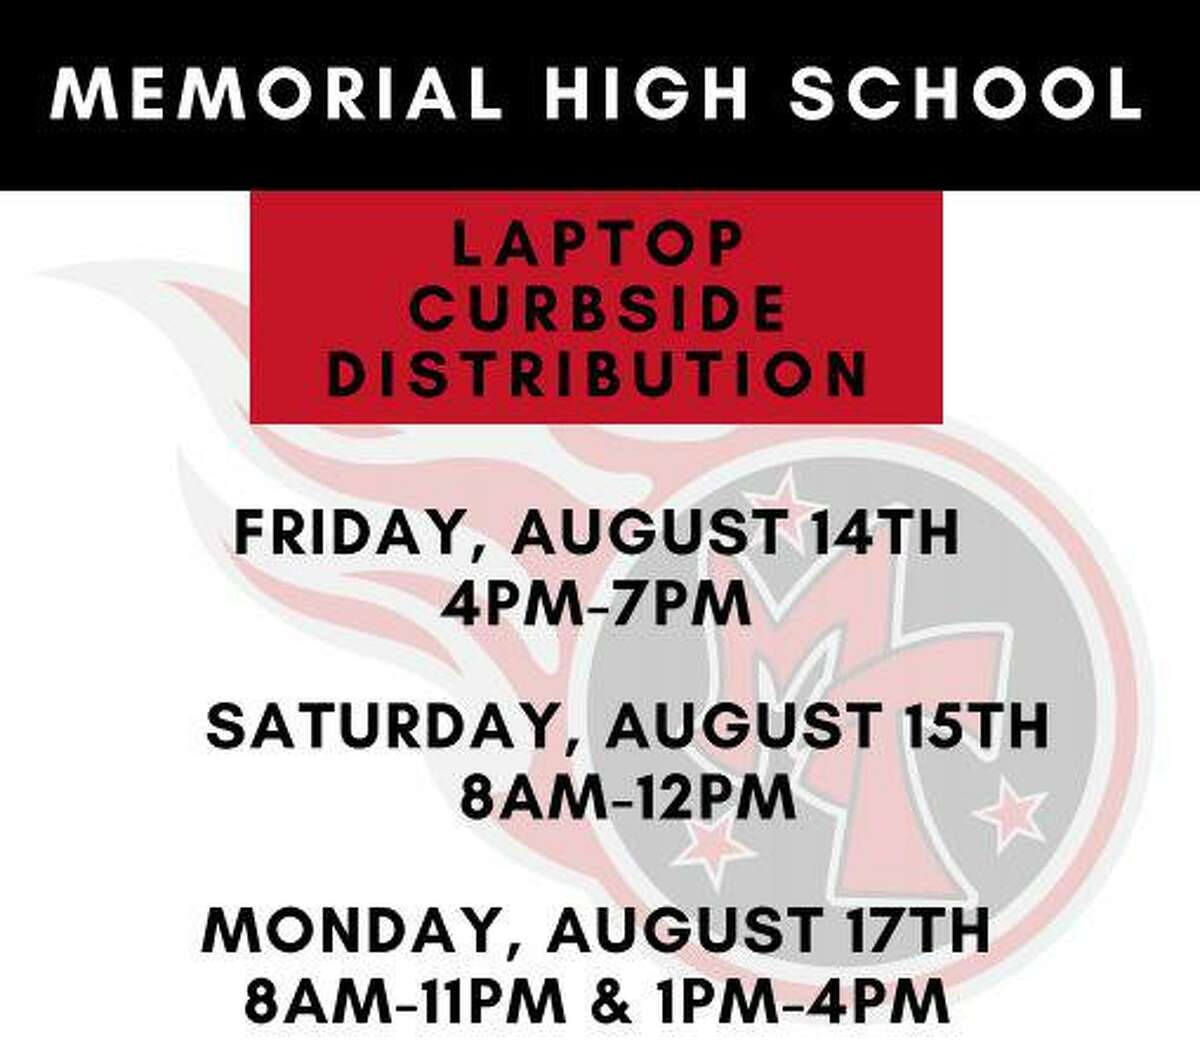 Port Arthur ISD announced dates and times for parents to pick up their learning materials and devices for virtual learning.